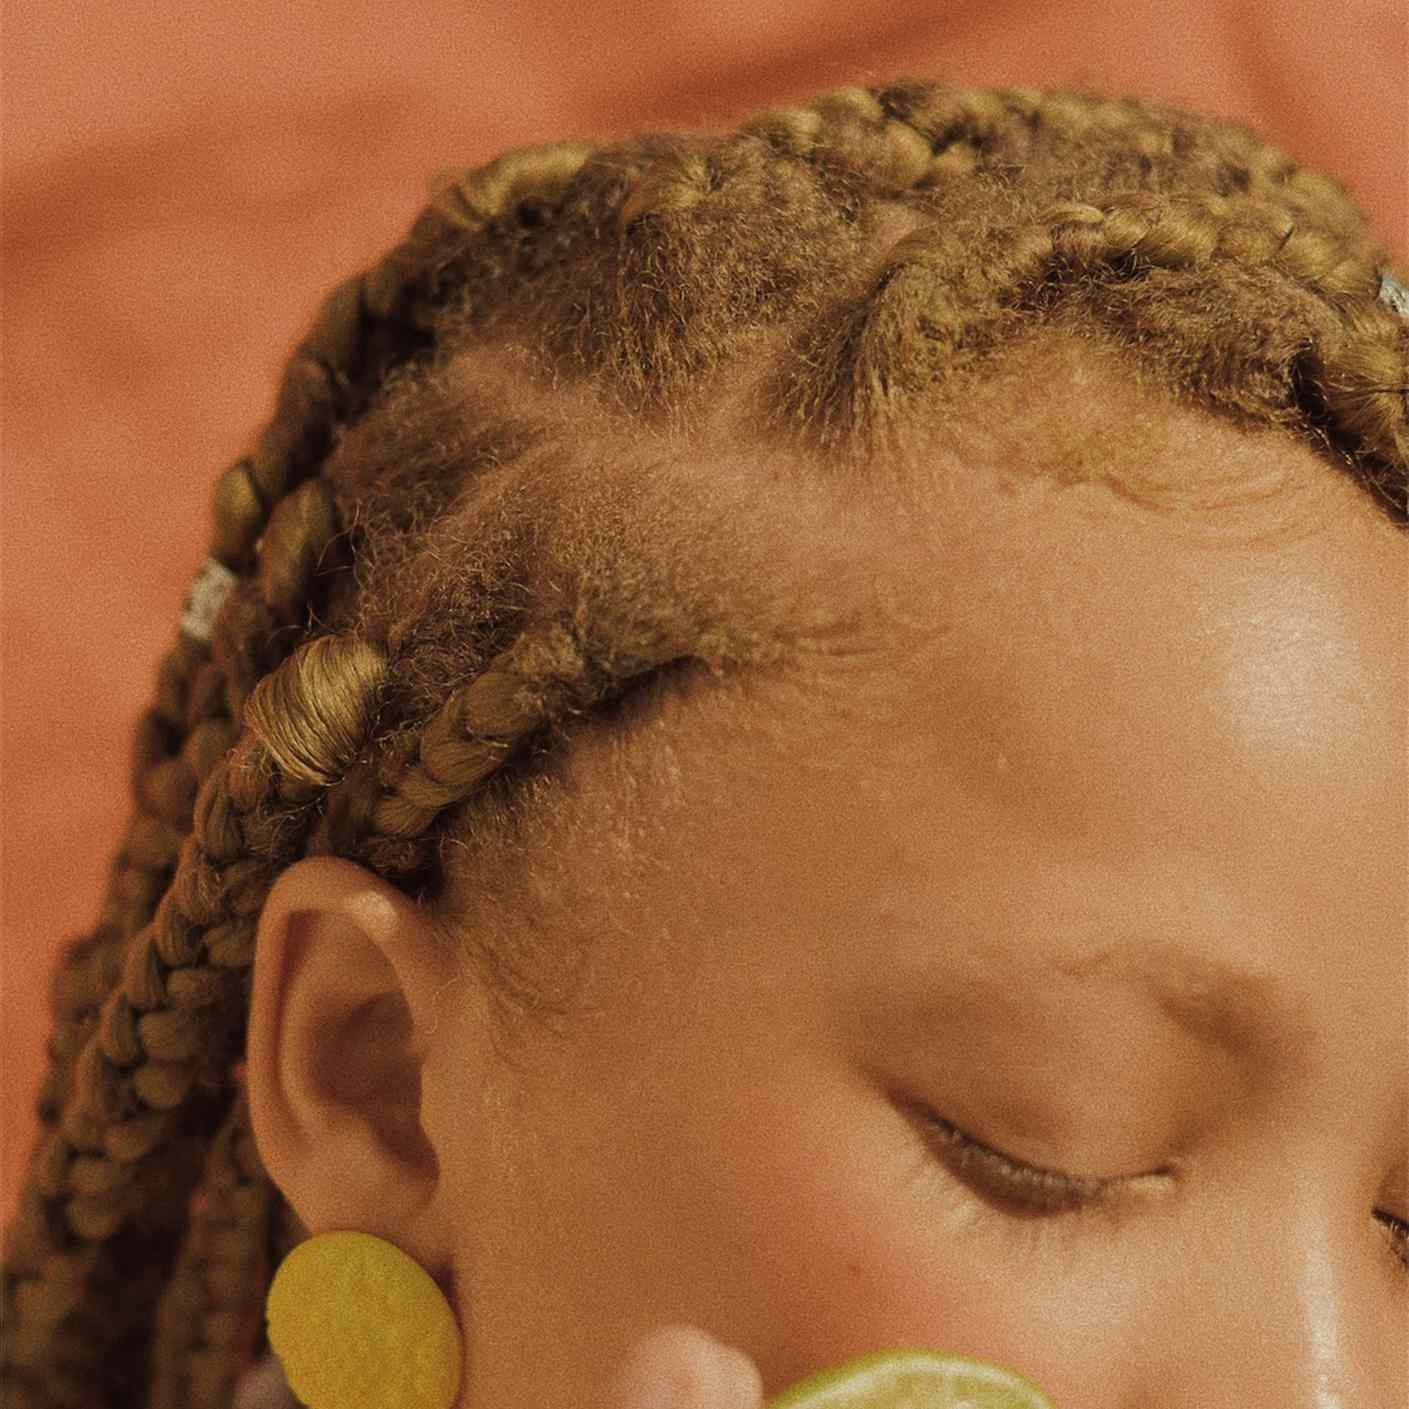 young woman with braids holding fruit